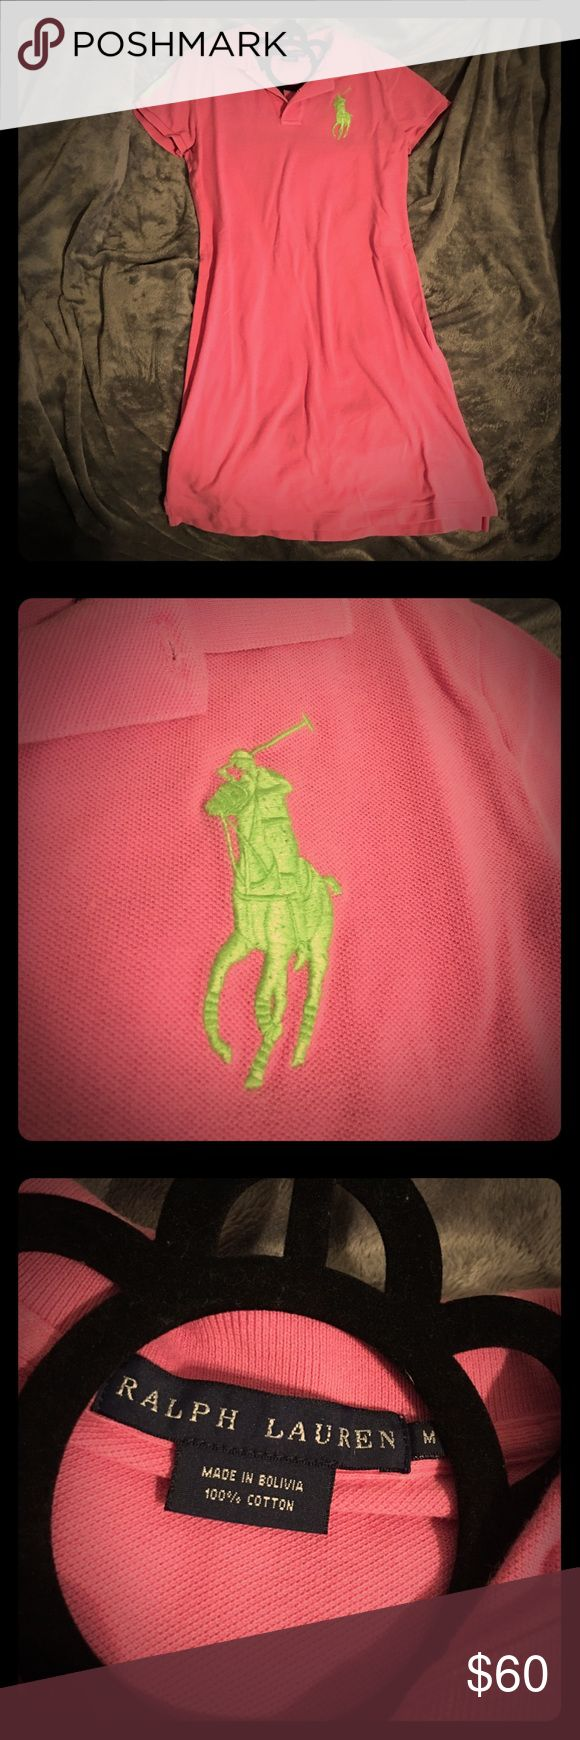 💖Pink Ralph Lauren Polo Dress💖 ✨👚Pink Ralph Lauren Polo Dress👚✨Size M✨Green logo and detailing✨Still Like New✨Only worn once✨Great Dress for work, golf, interviews, &great for any occasion or event✨No pilling or flaws✨Washed and ready to ship📦 Add to a bundle🛍 Always open to offers🤗✨ Ralph Lauren Dresses